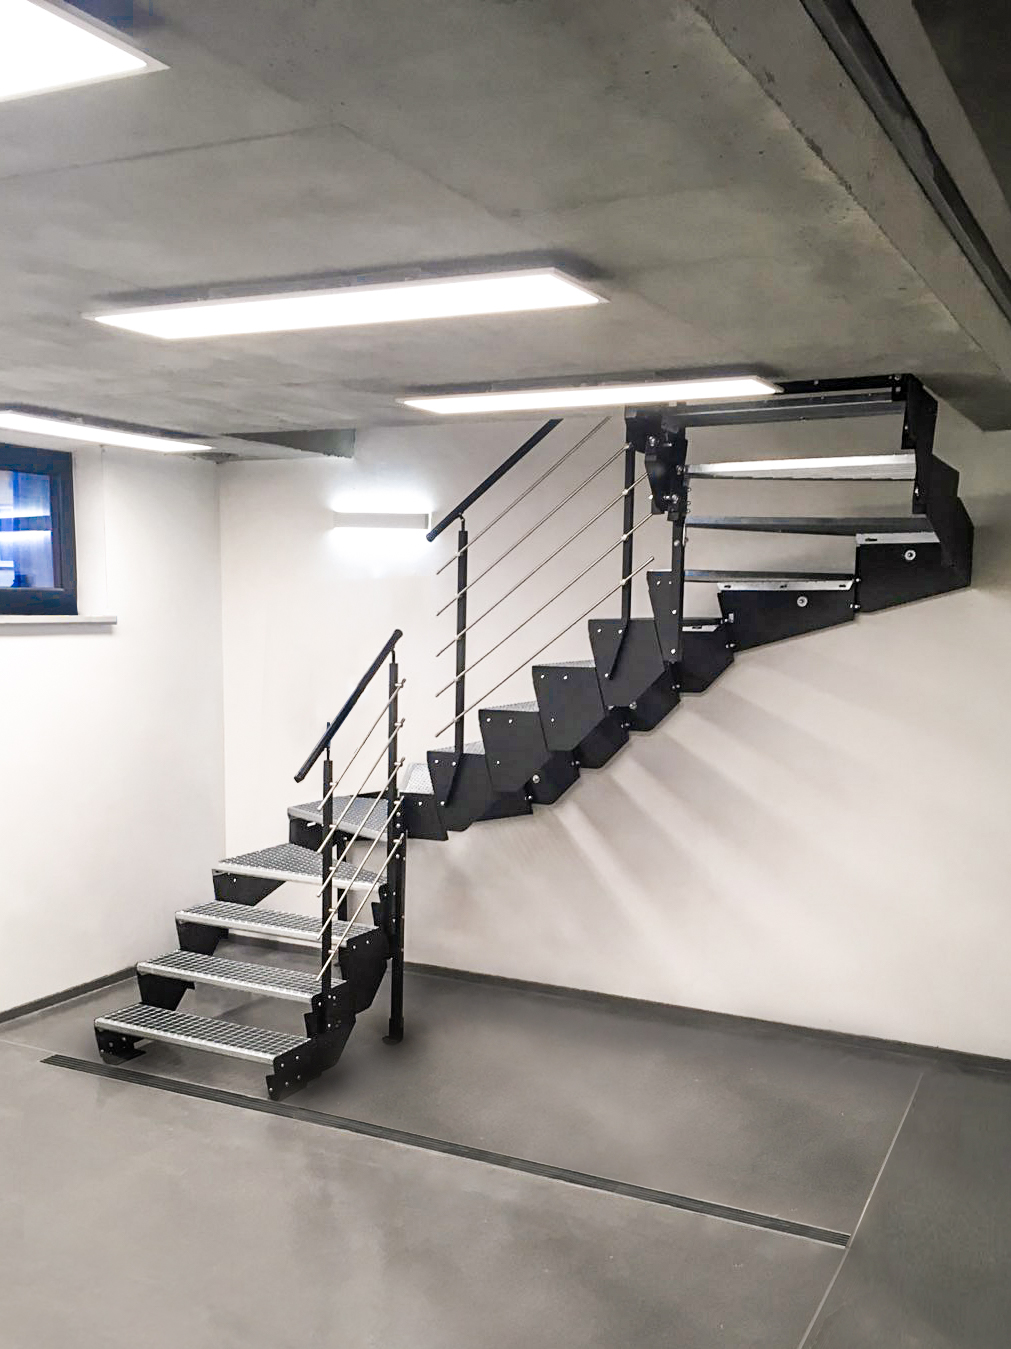 Asta Modular Stairs Adjustable Modular Steel Stairs For Indoor And Outdoor Use Tlc